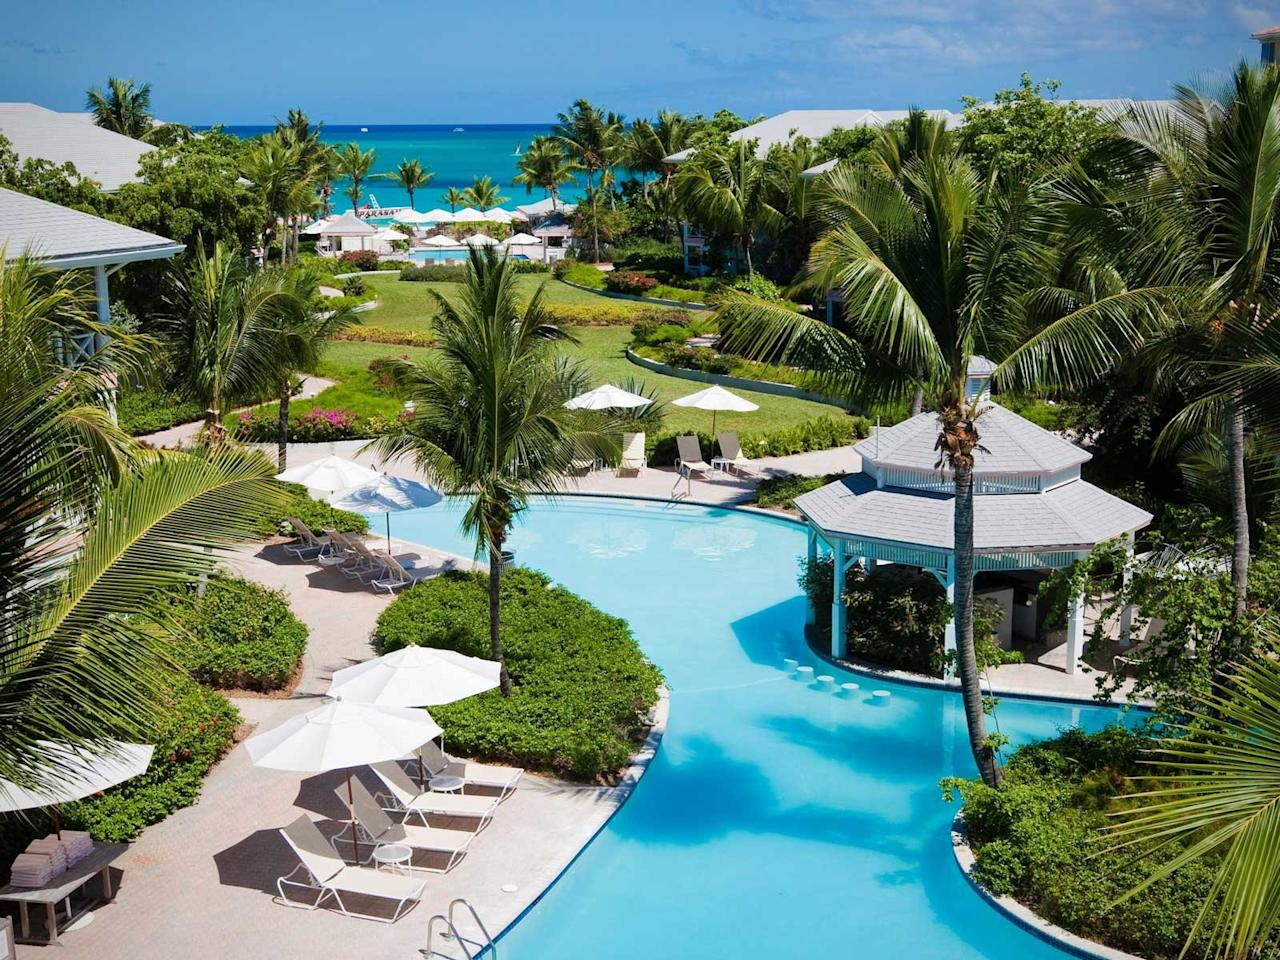 """<p>If you and your special someone are looking for a quick escape, this is the place to do it. With their <a href=""""https://www.oceanclubresorts.com/specialty-packages/dining-package/"""">3 Days, 3 Choices package</a> you'll get nine meal vouchers — three for breakfast, three for lunch, and three for dinner — so you can decide where you want to go and what you want to order during your vacation.</p> <p>This resort is next to Grace Bay Beach in Providenciales, <a href=""""https://www.travelandleisure.com/travel-guide/turks-caicos"""">Turks and Caicos</a> and has suites with kitchens, washer/dryers, and porches. On-site you can do watersports, bike, play a game of tennis, and enjoy the beach.</p>"""